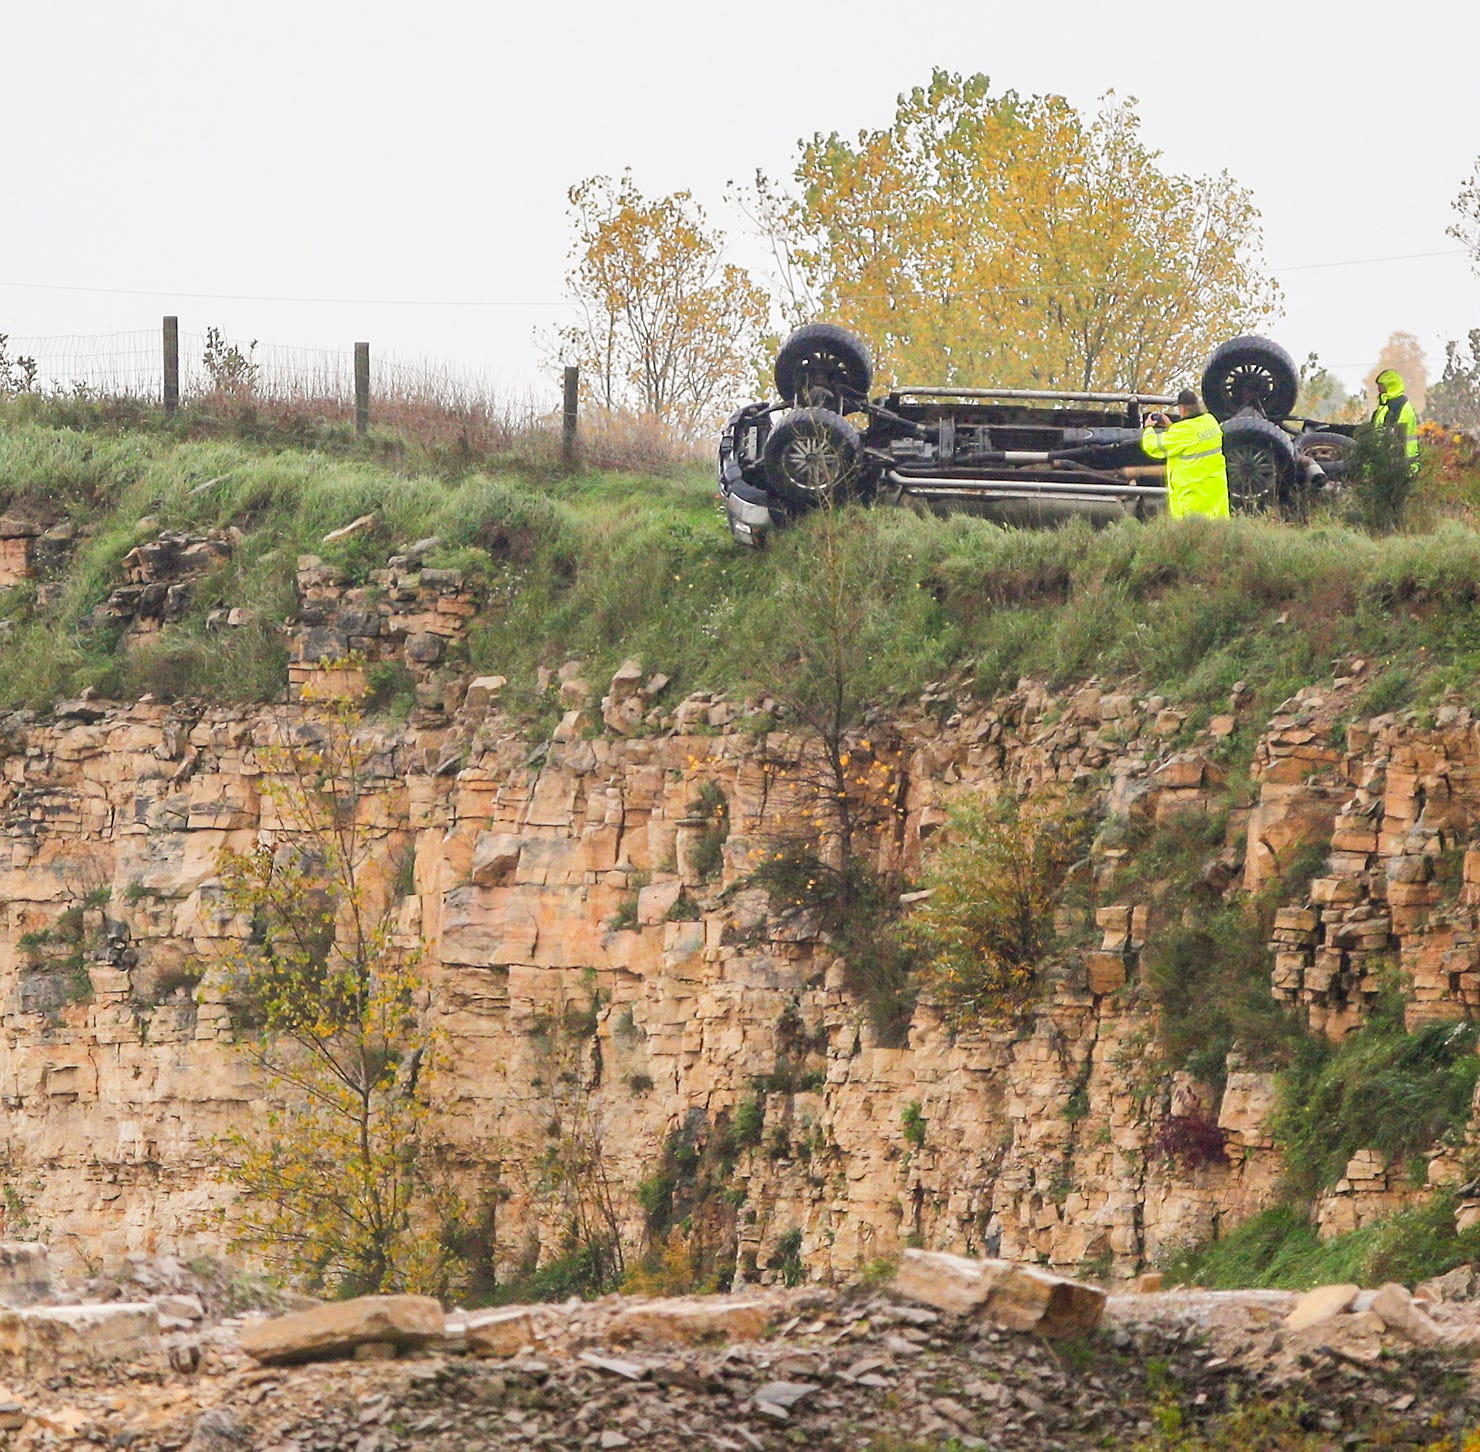 Man killed Oct. 10 in rollover crash on I-41 identified as John Buchholz of Waupun